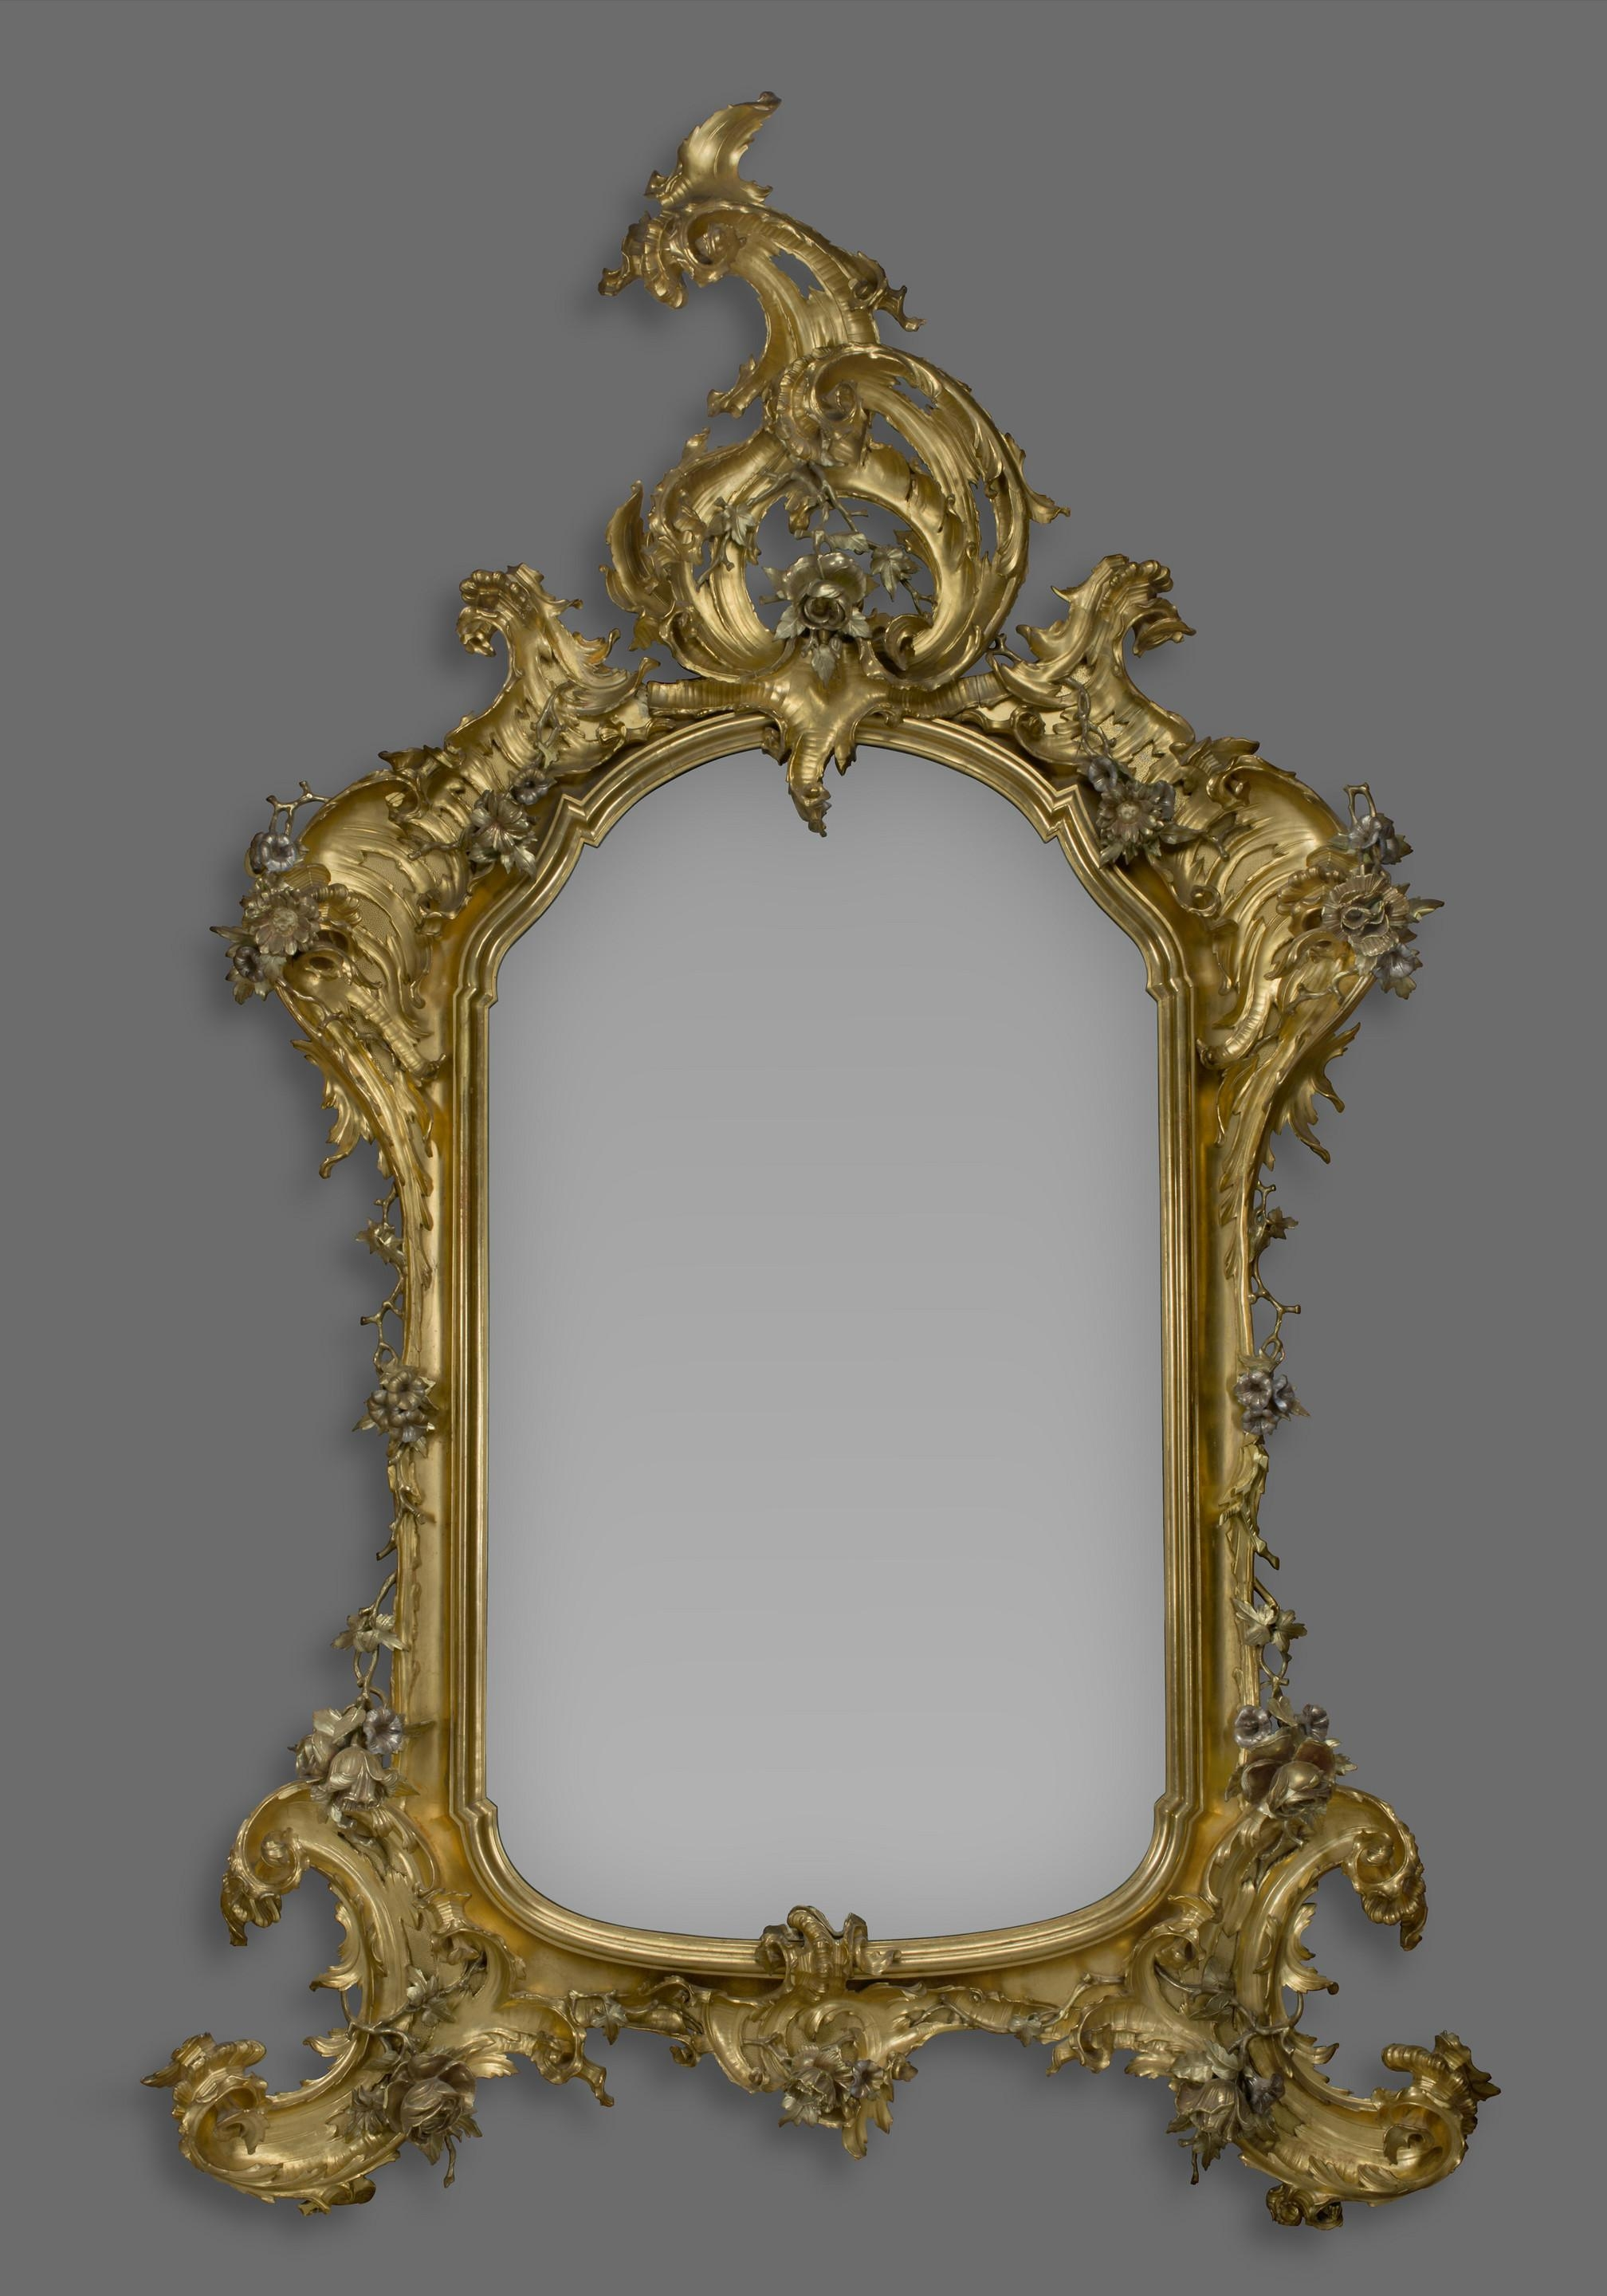 A Large Rococo Style Carved Giltwood And Silver Gilt Mirror (C Throughout Large Rococo Mirror (Image 2 of 20)